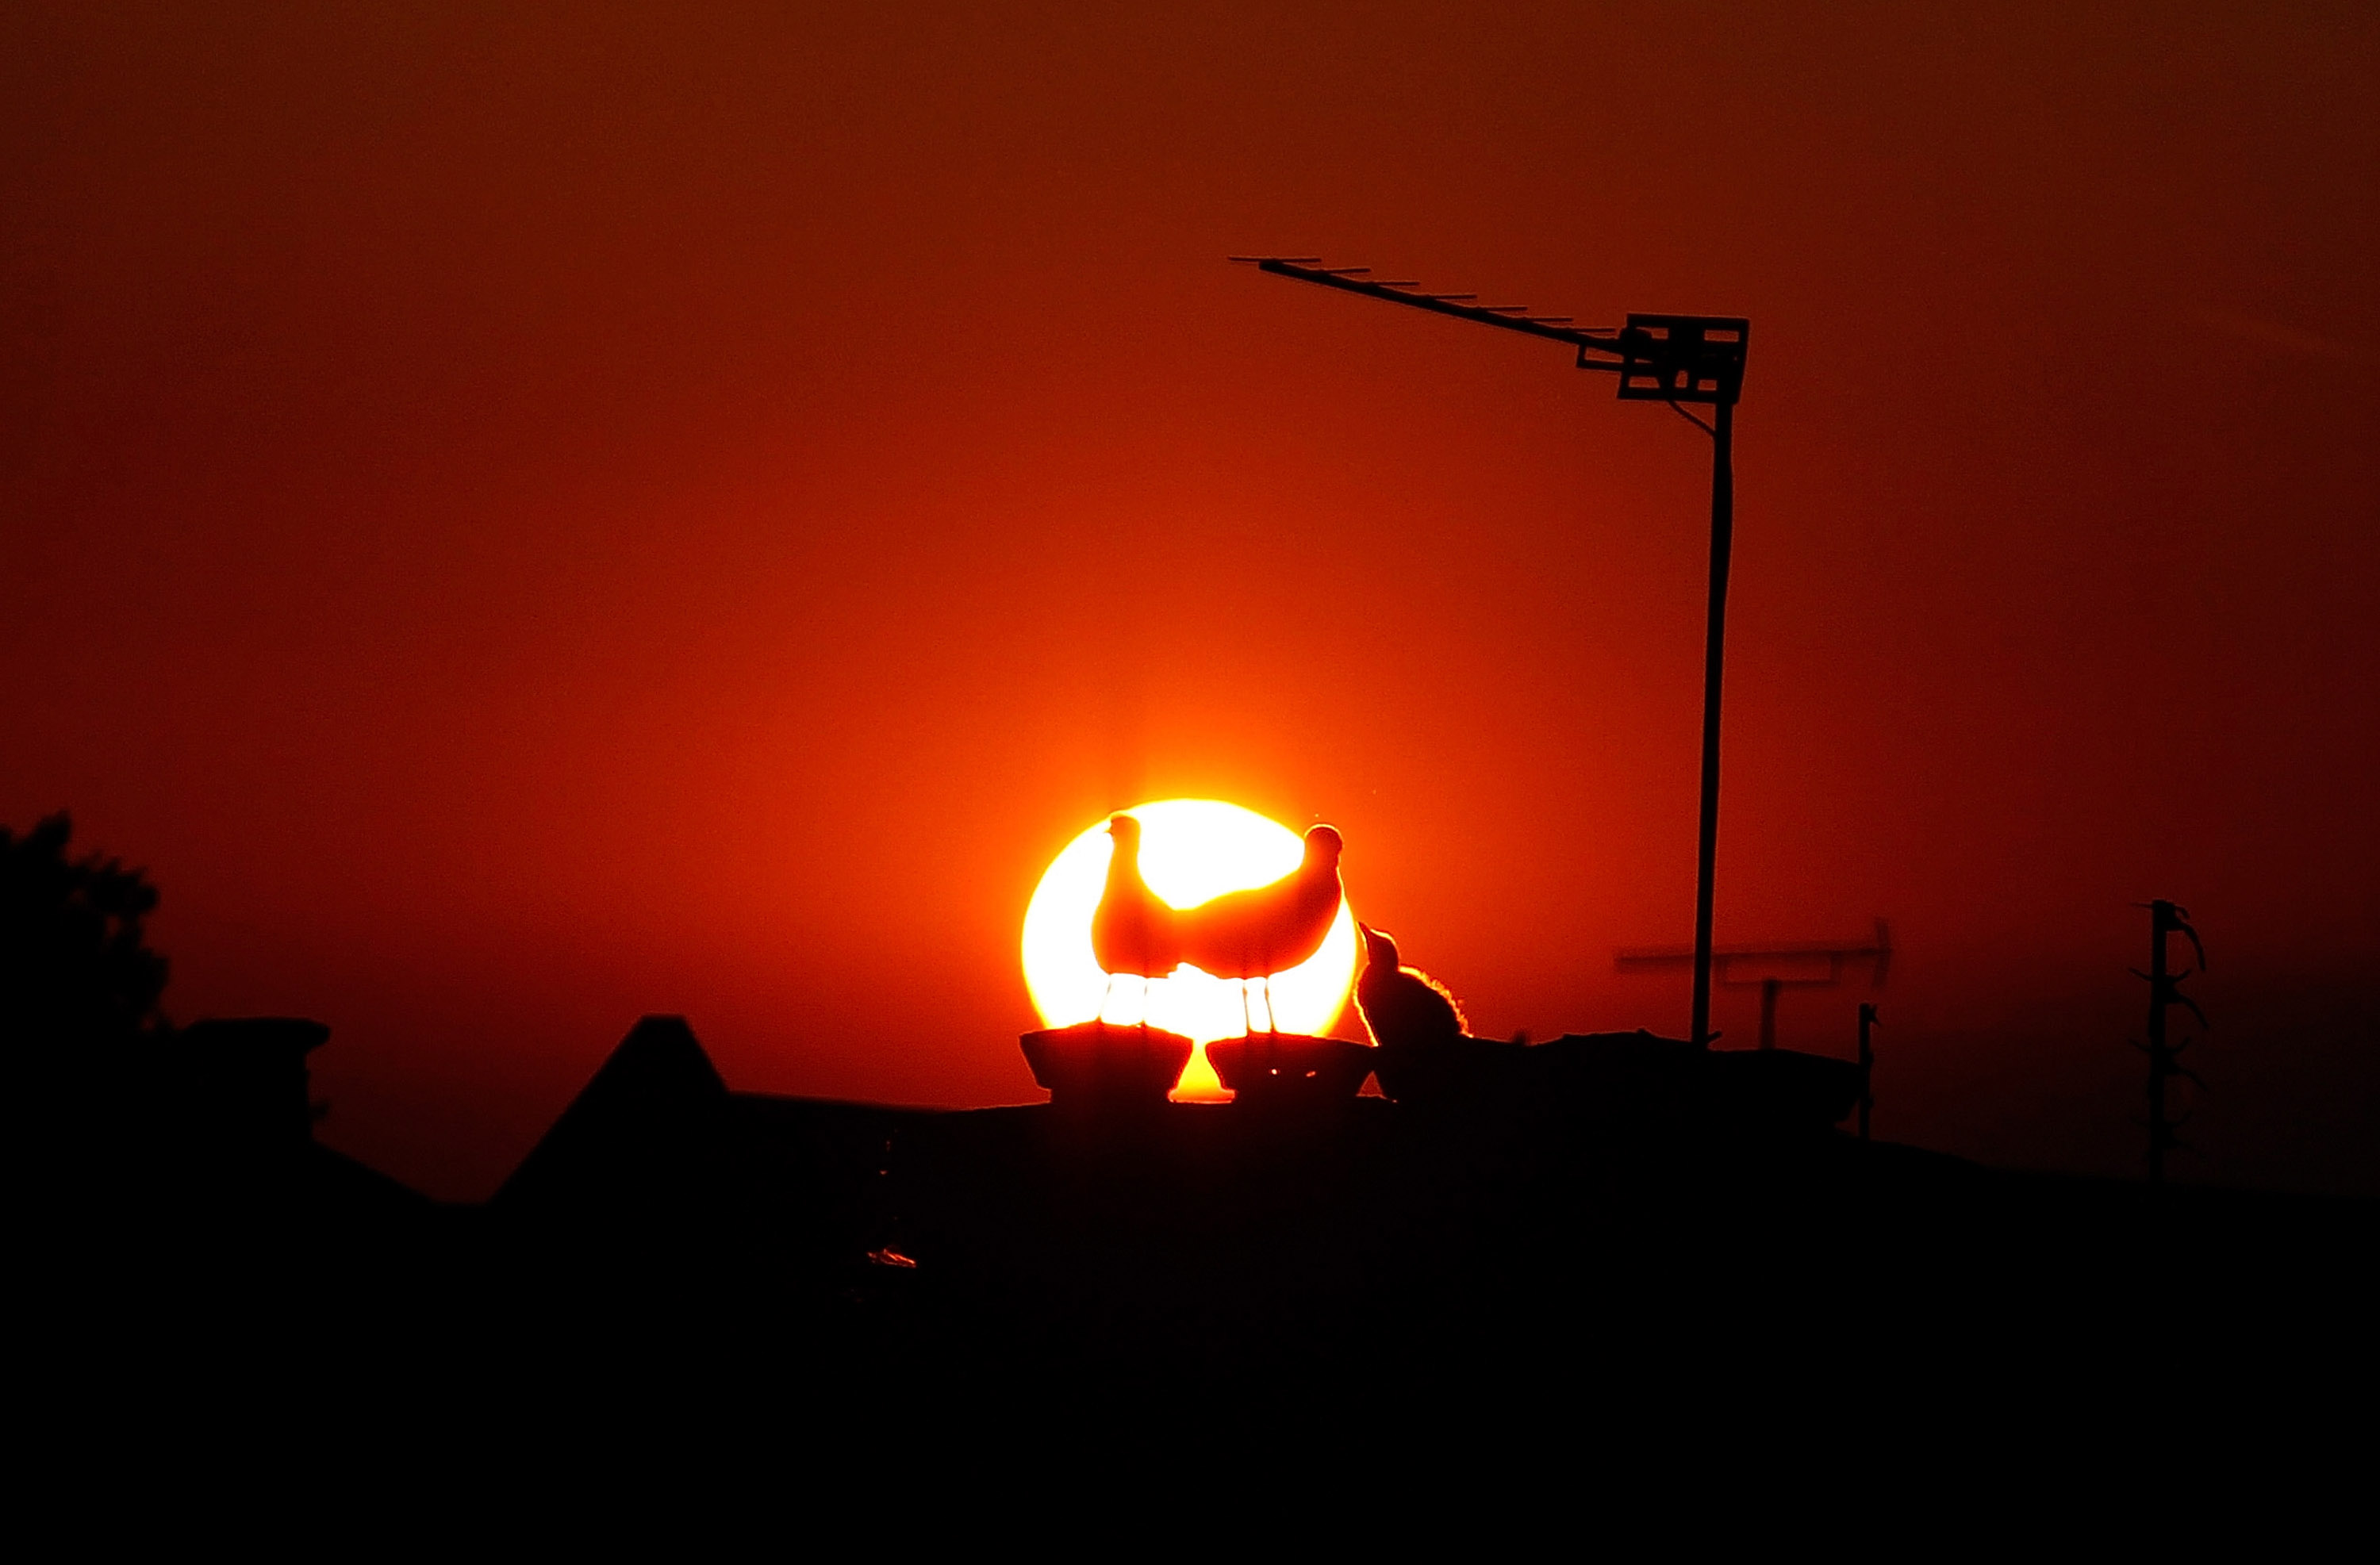 A family of seagulls are silhouetted on the rooftops of Peckham as the sun goes down